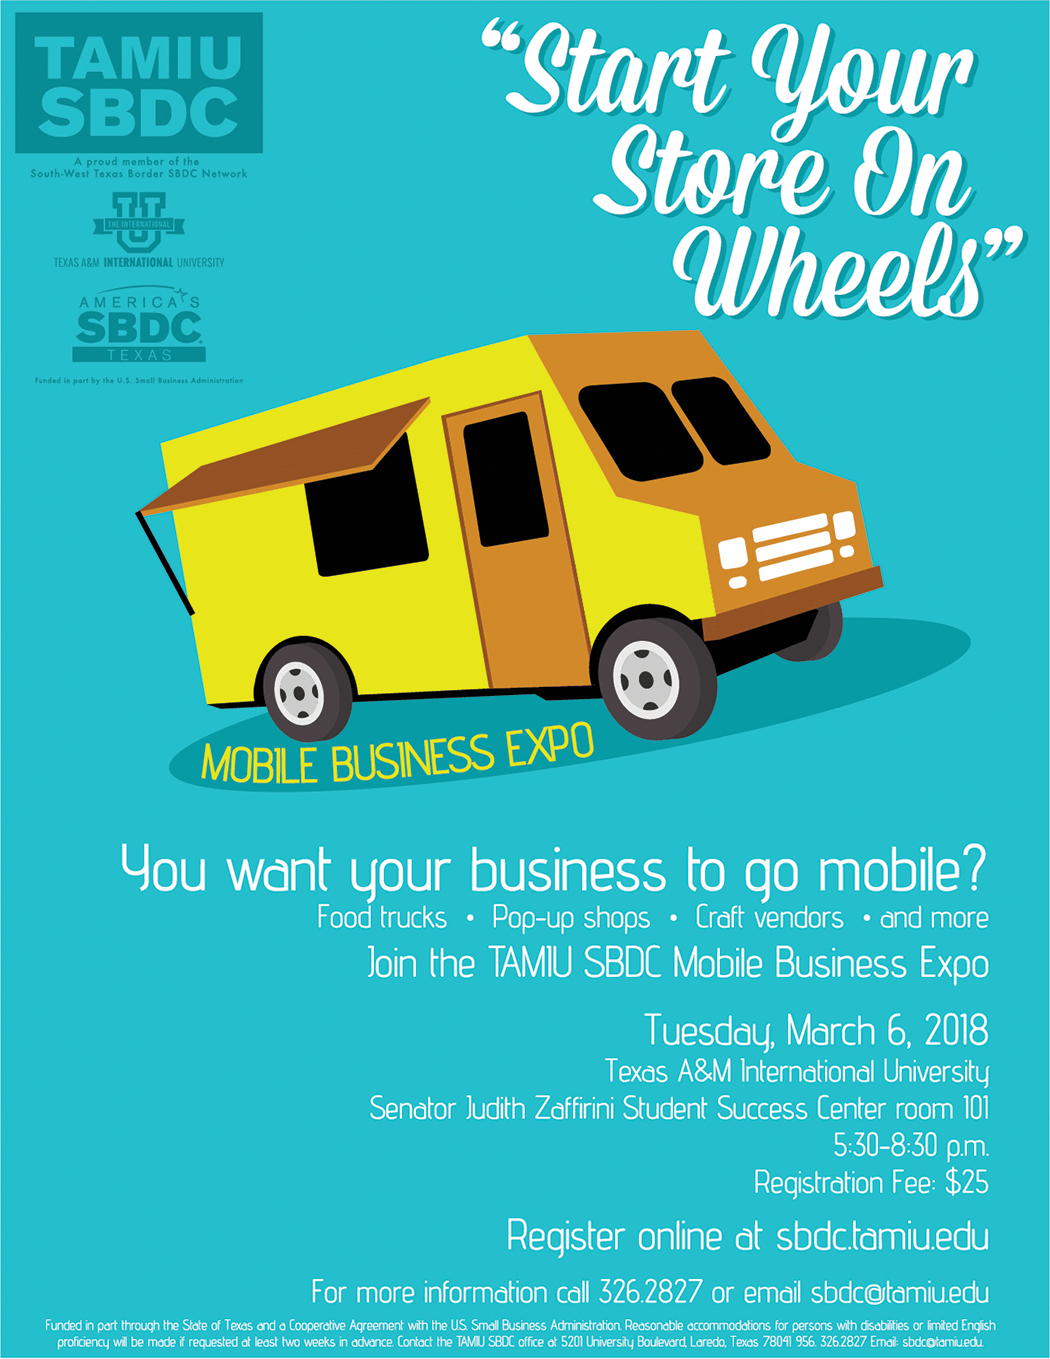 Start Your Store On Wheels: Mobile Business Expo (March 6, 2018)